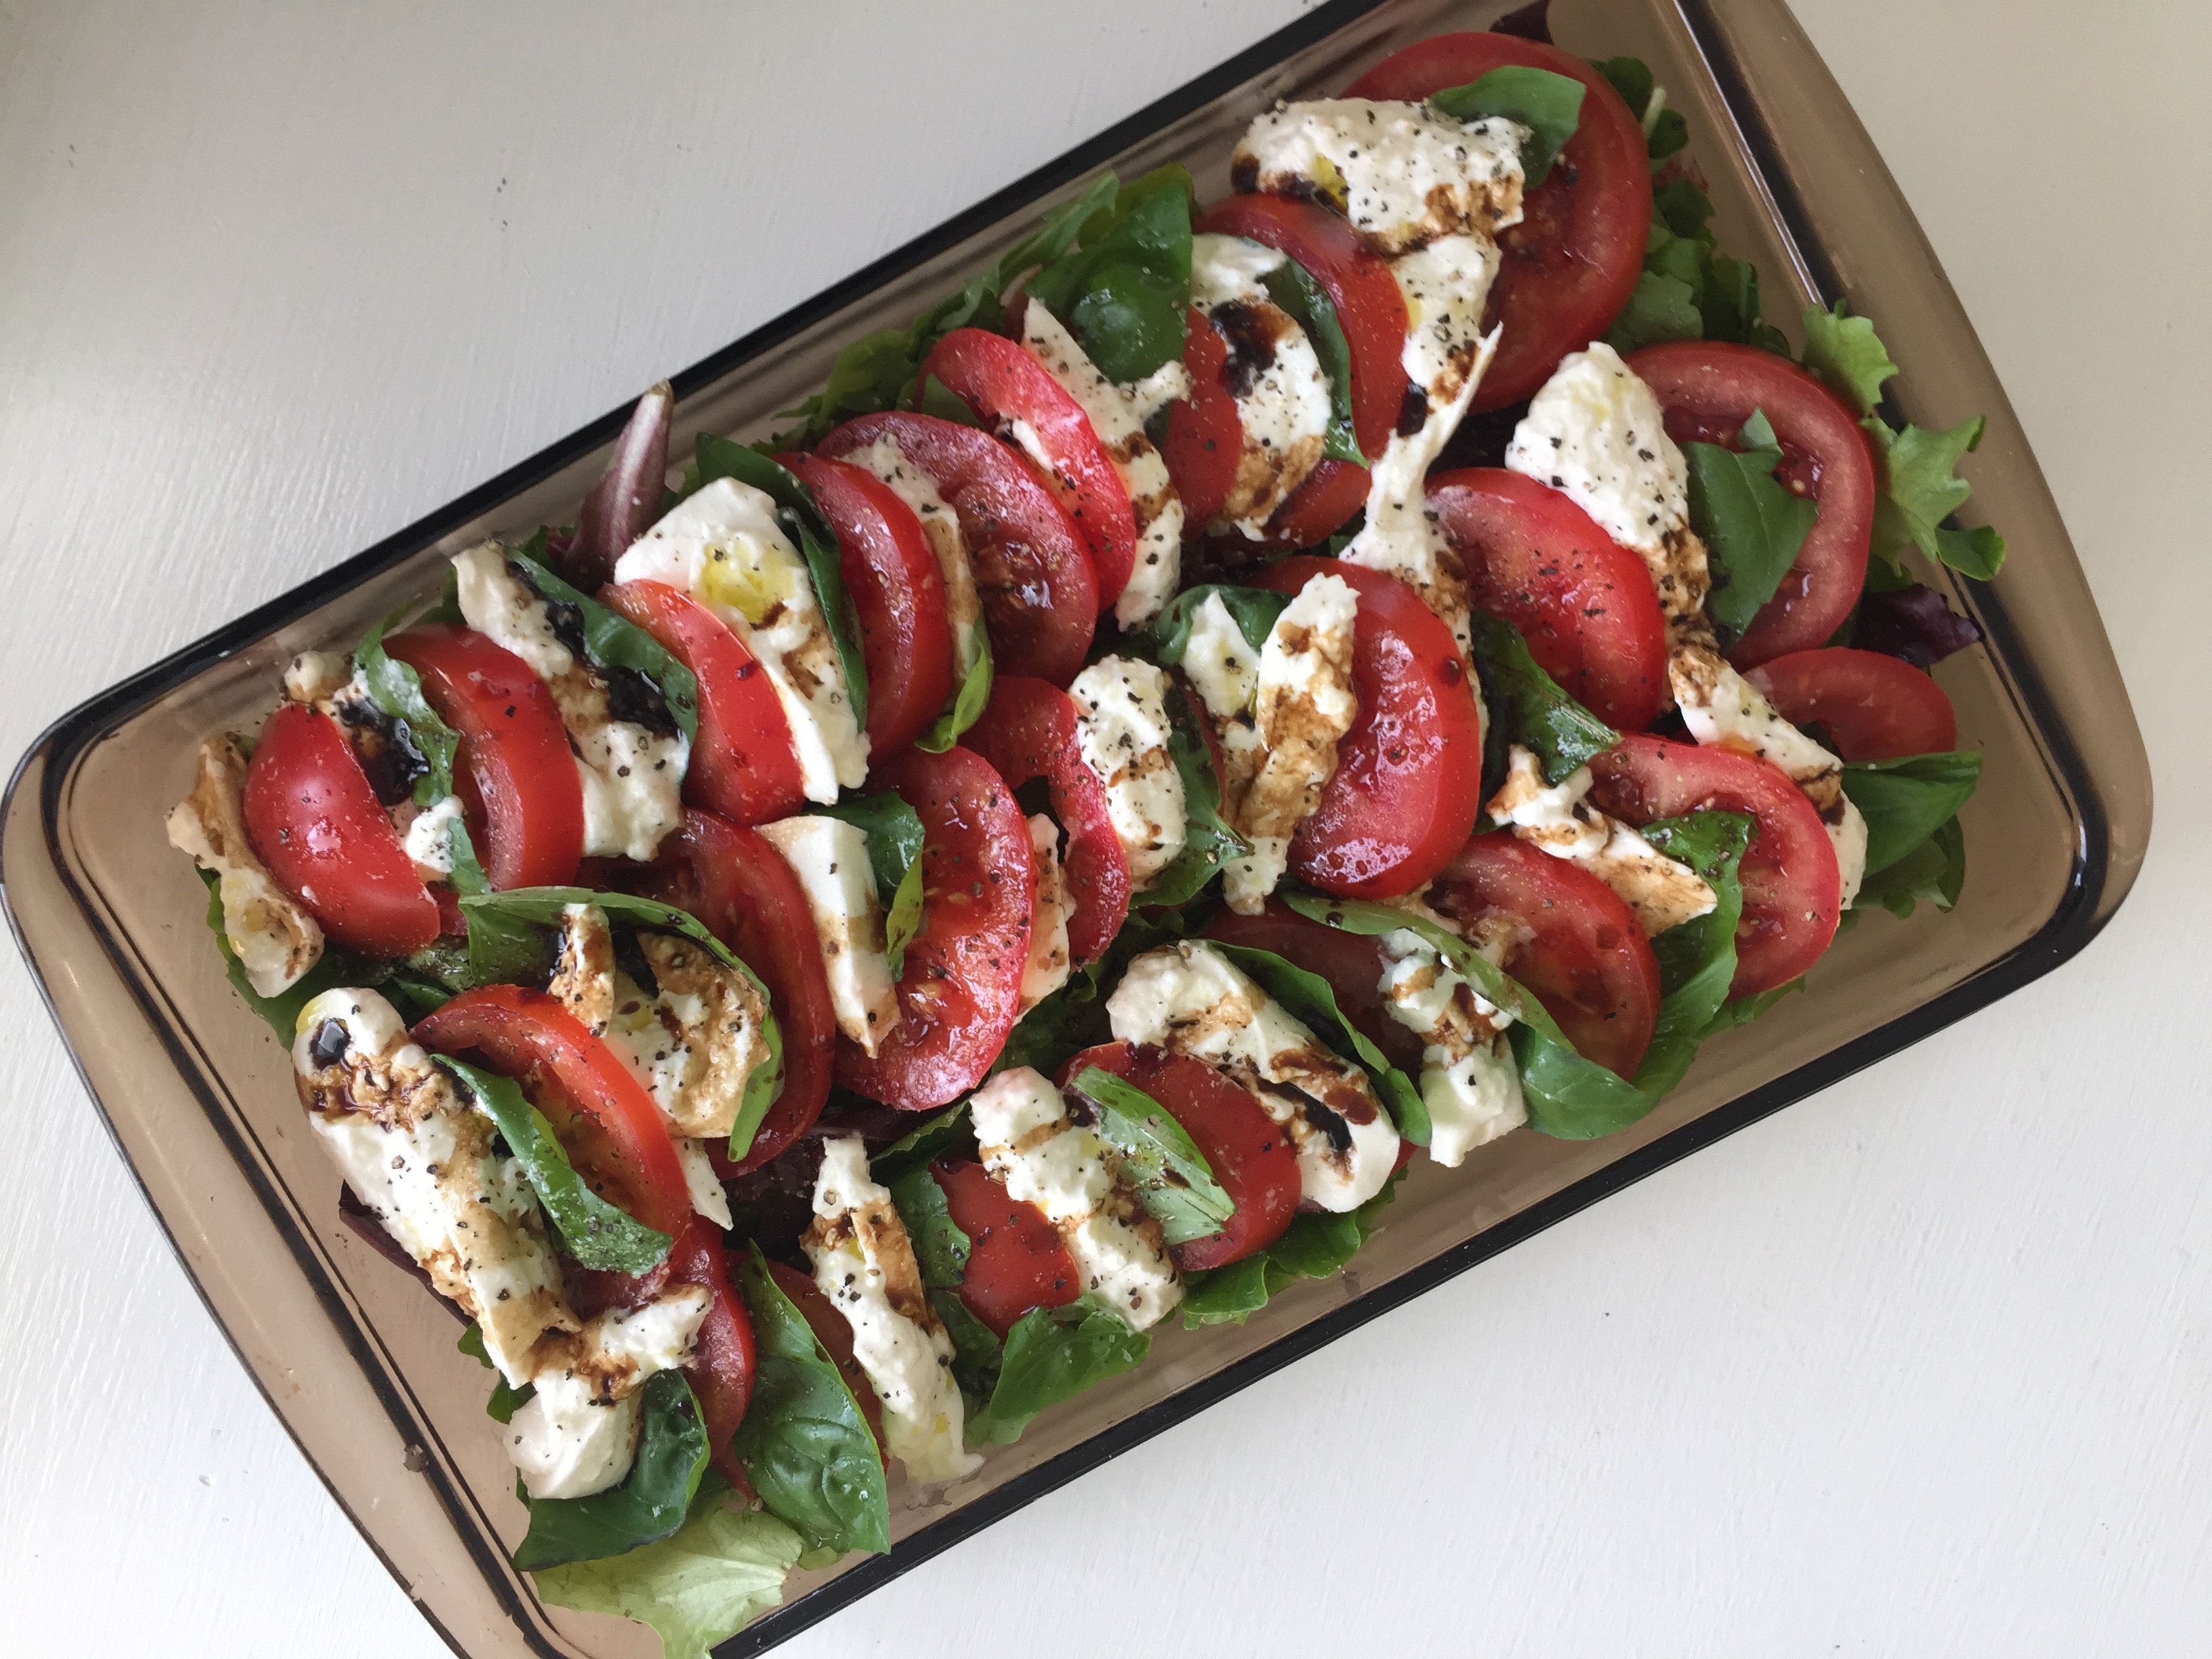 Caprese Salad with Burrata instead of Mozzarella